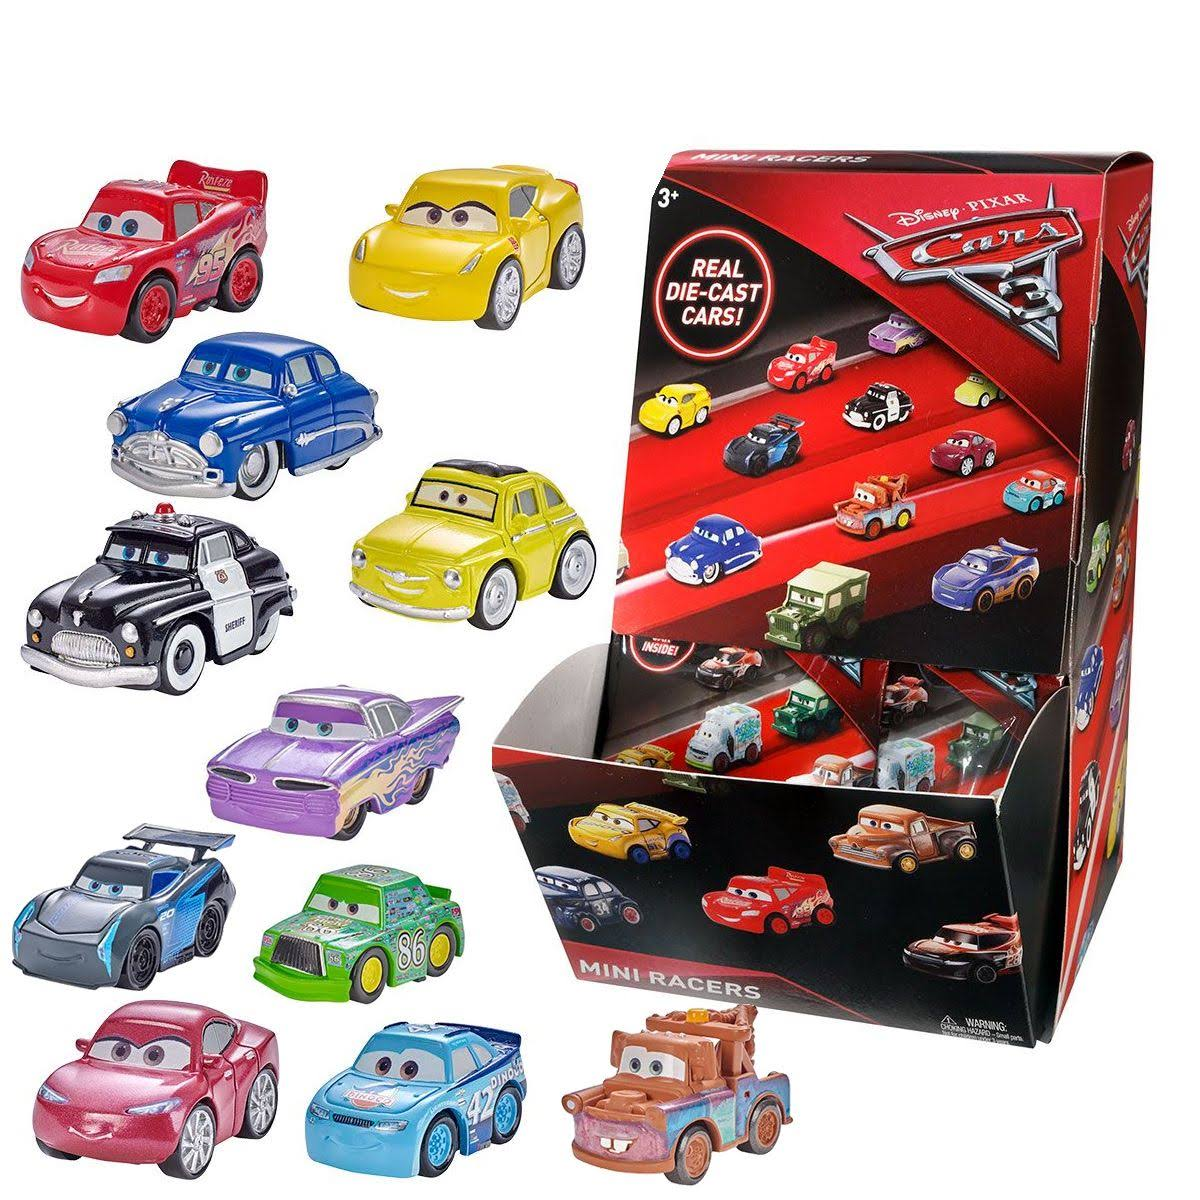 Disney Cars 3 Mini Racers Blindpack Car Toys